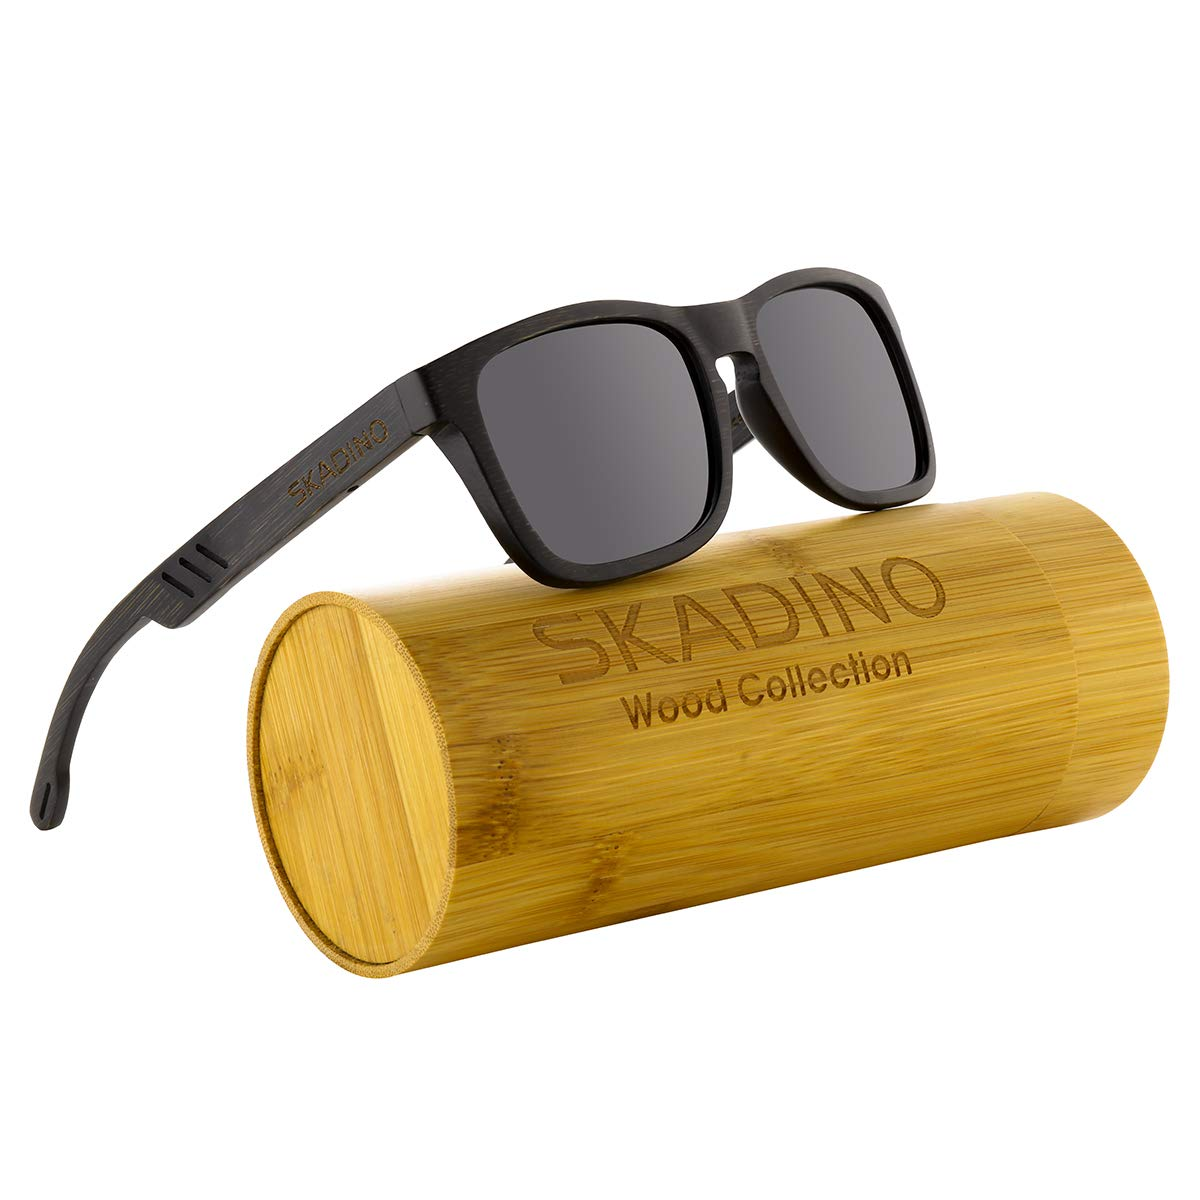 Black 1 SKADINO Handmade Bamboo Sunglasses with bluee Mirror Polarized Lenses for Men or Women in a Cateye That Floats SKD046